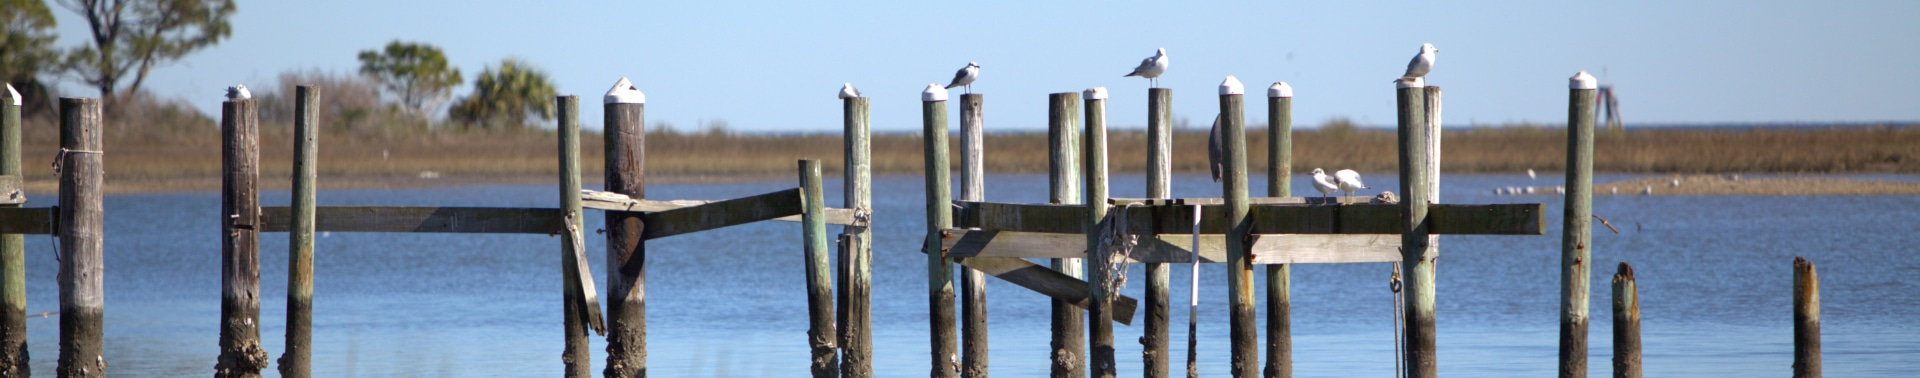 Birds resting on wooden poles